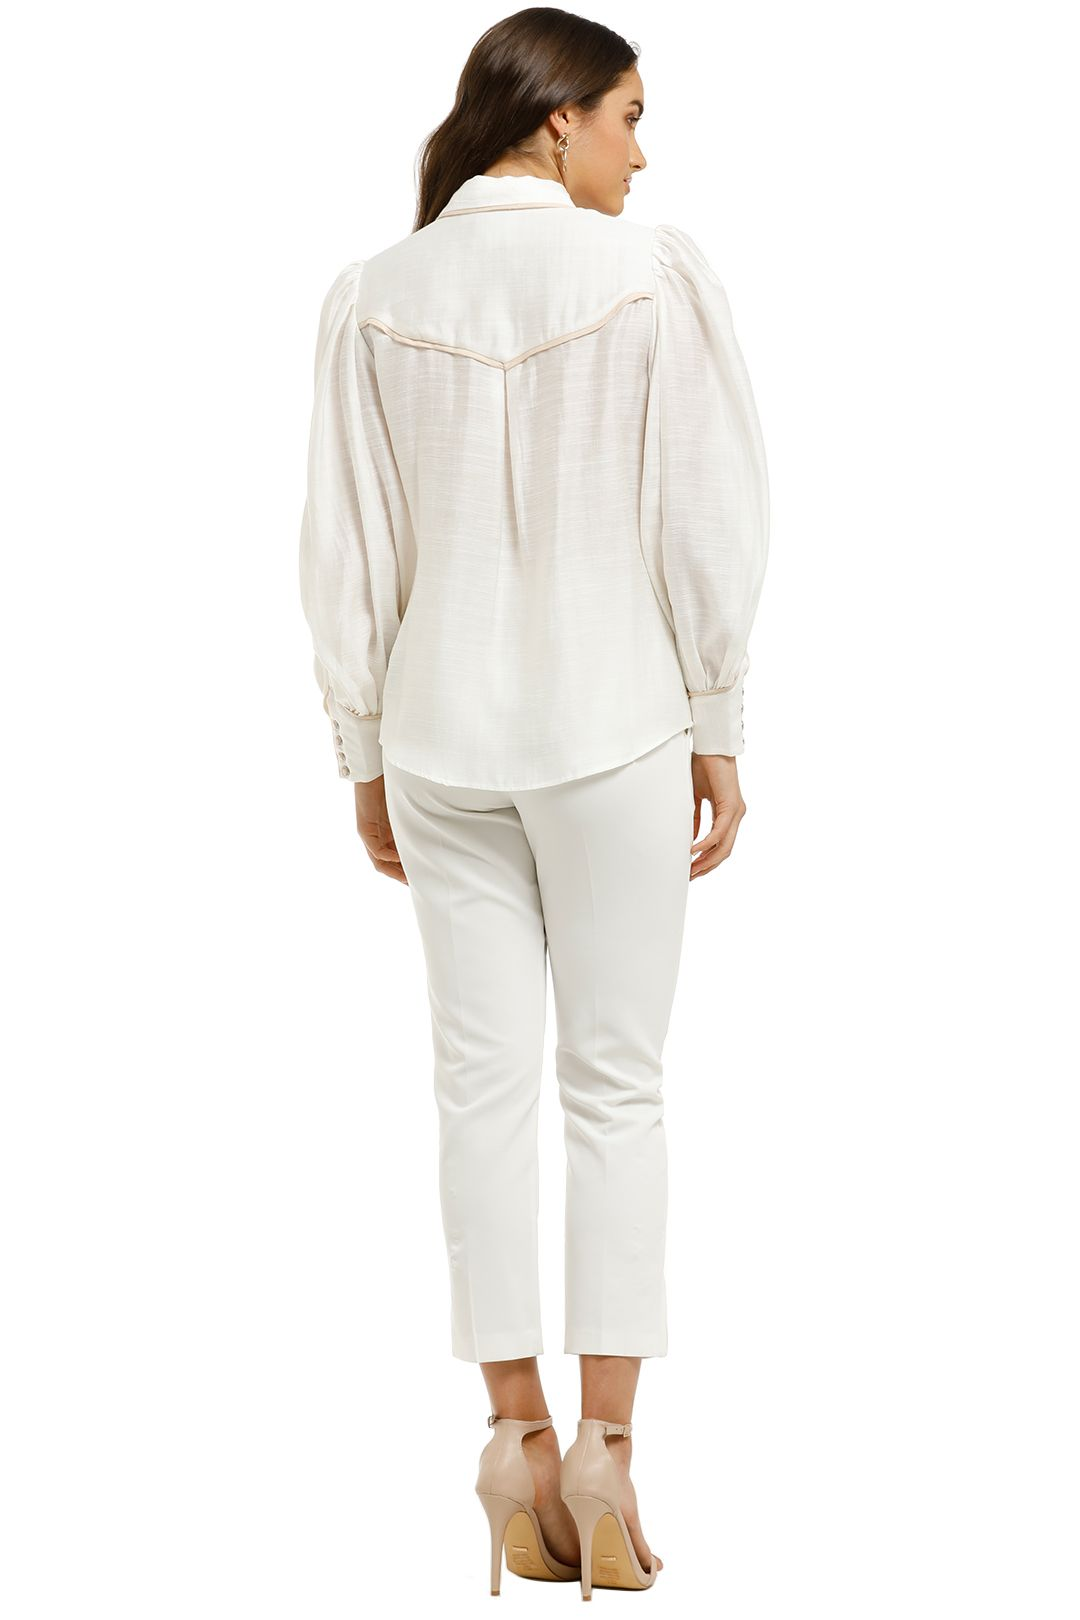 CMEO-Collective-Nearby-Shirt-Ivory-Back